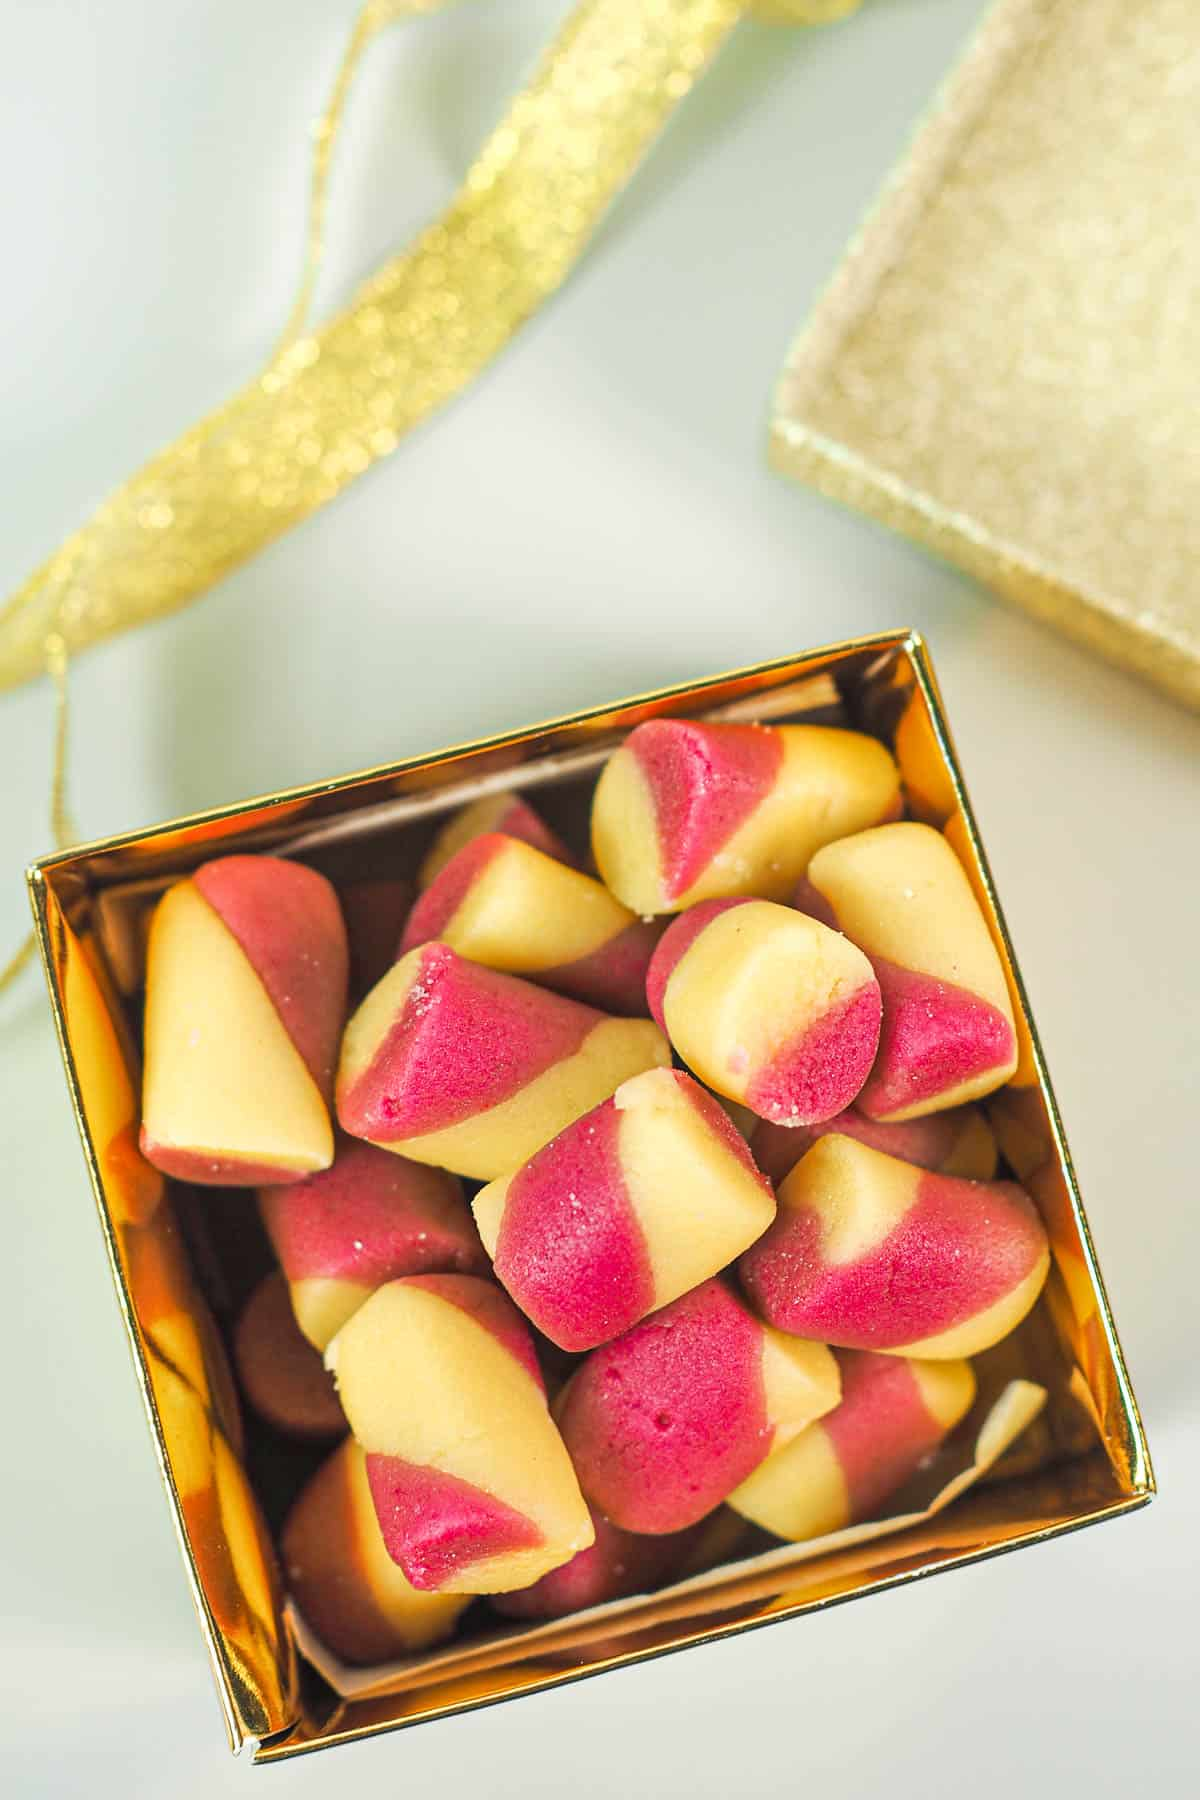 Pink and yellow homemade butter mints in a gold box